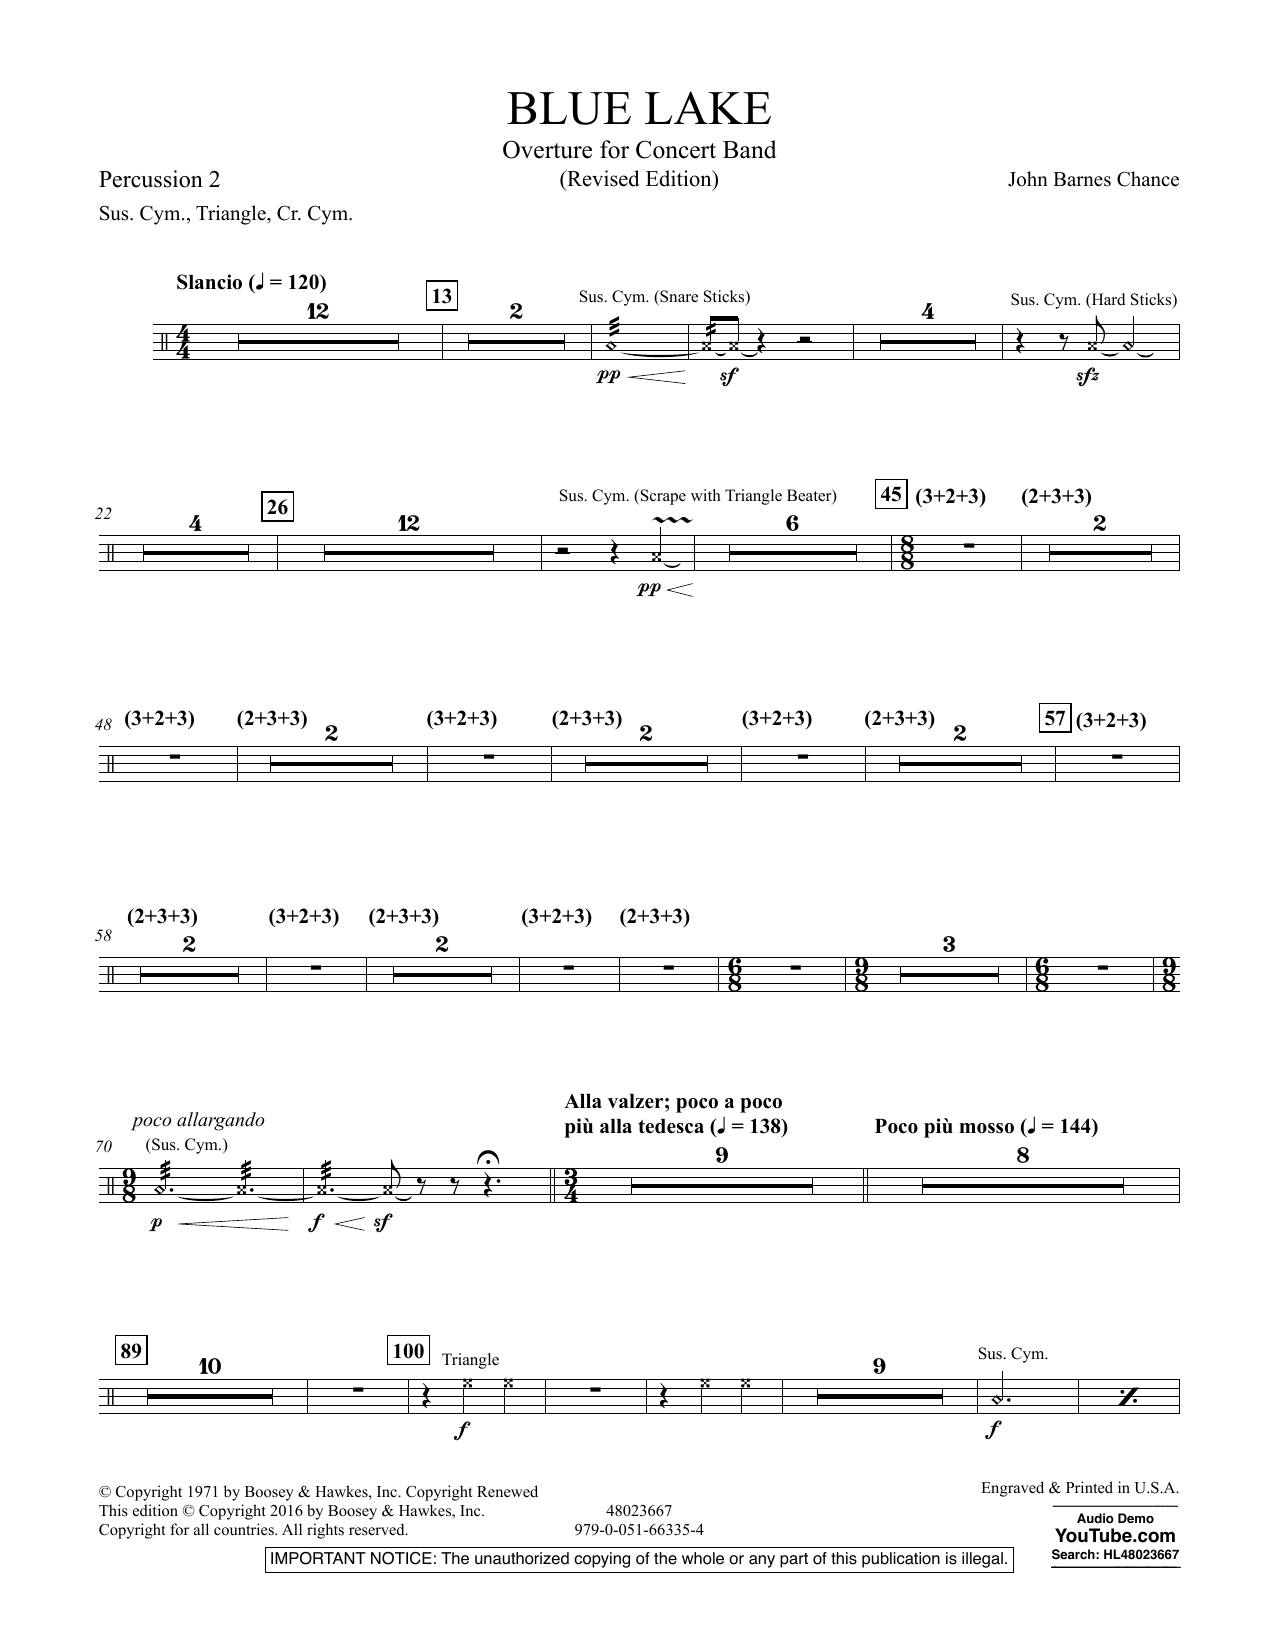 Blue Lake (Overture for Concert Band) - Percussion 2 (Concert Band)